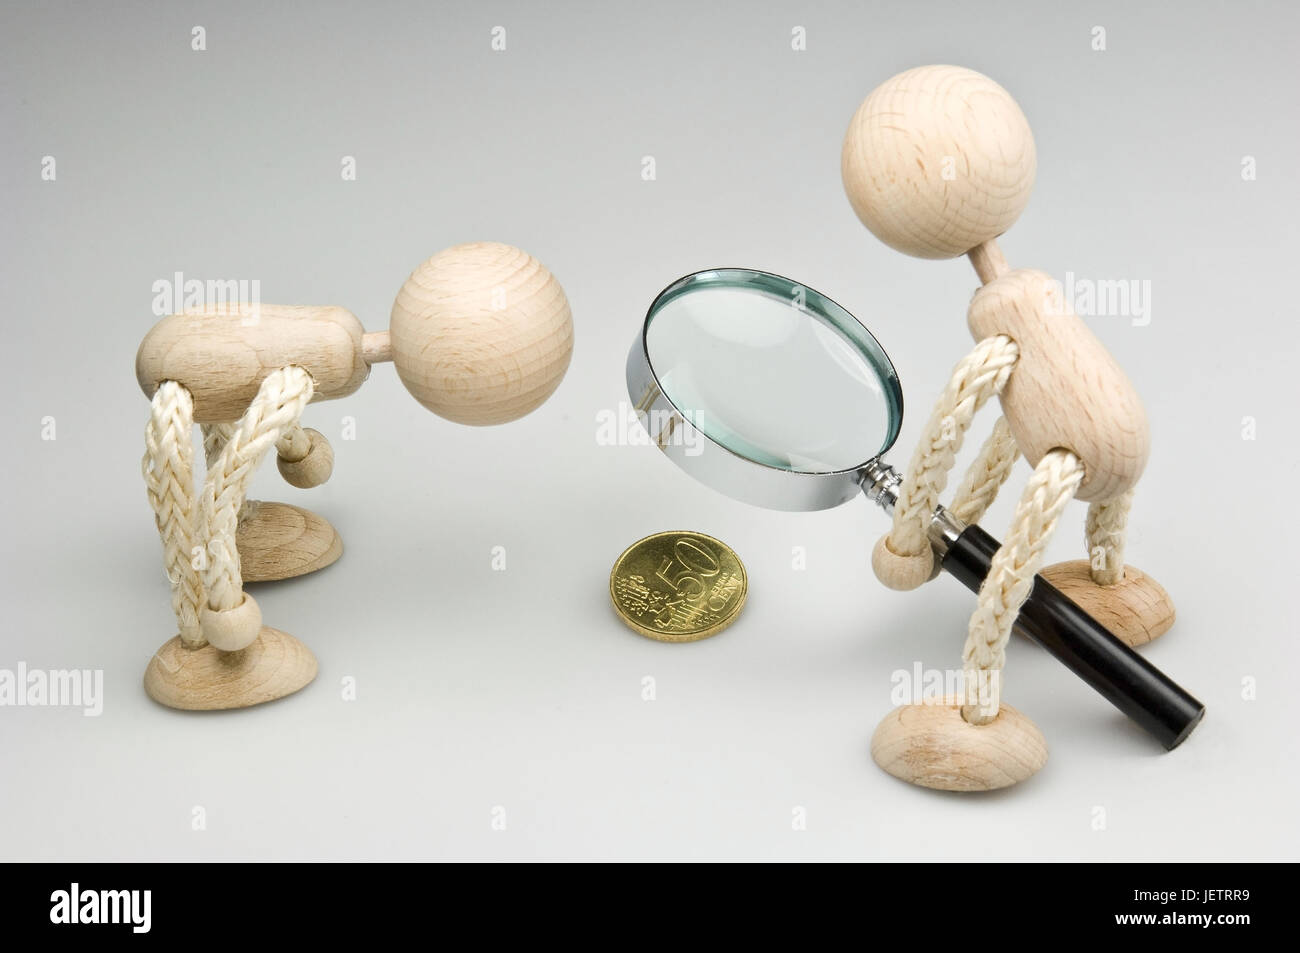 Two wooden figures with magnifying glass and 50 euro cent coin, Zwei Holzfiguren mit Lupe und 50-Eurocent-Muenze - Stock Image